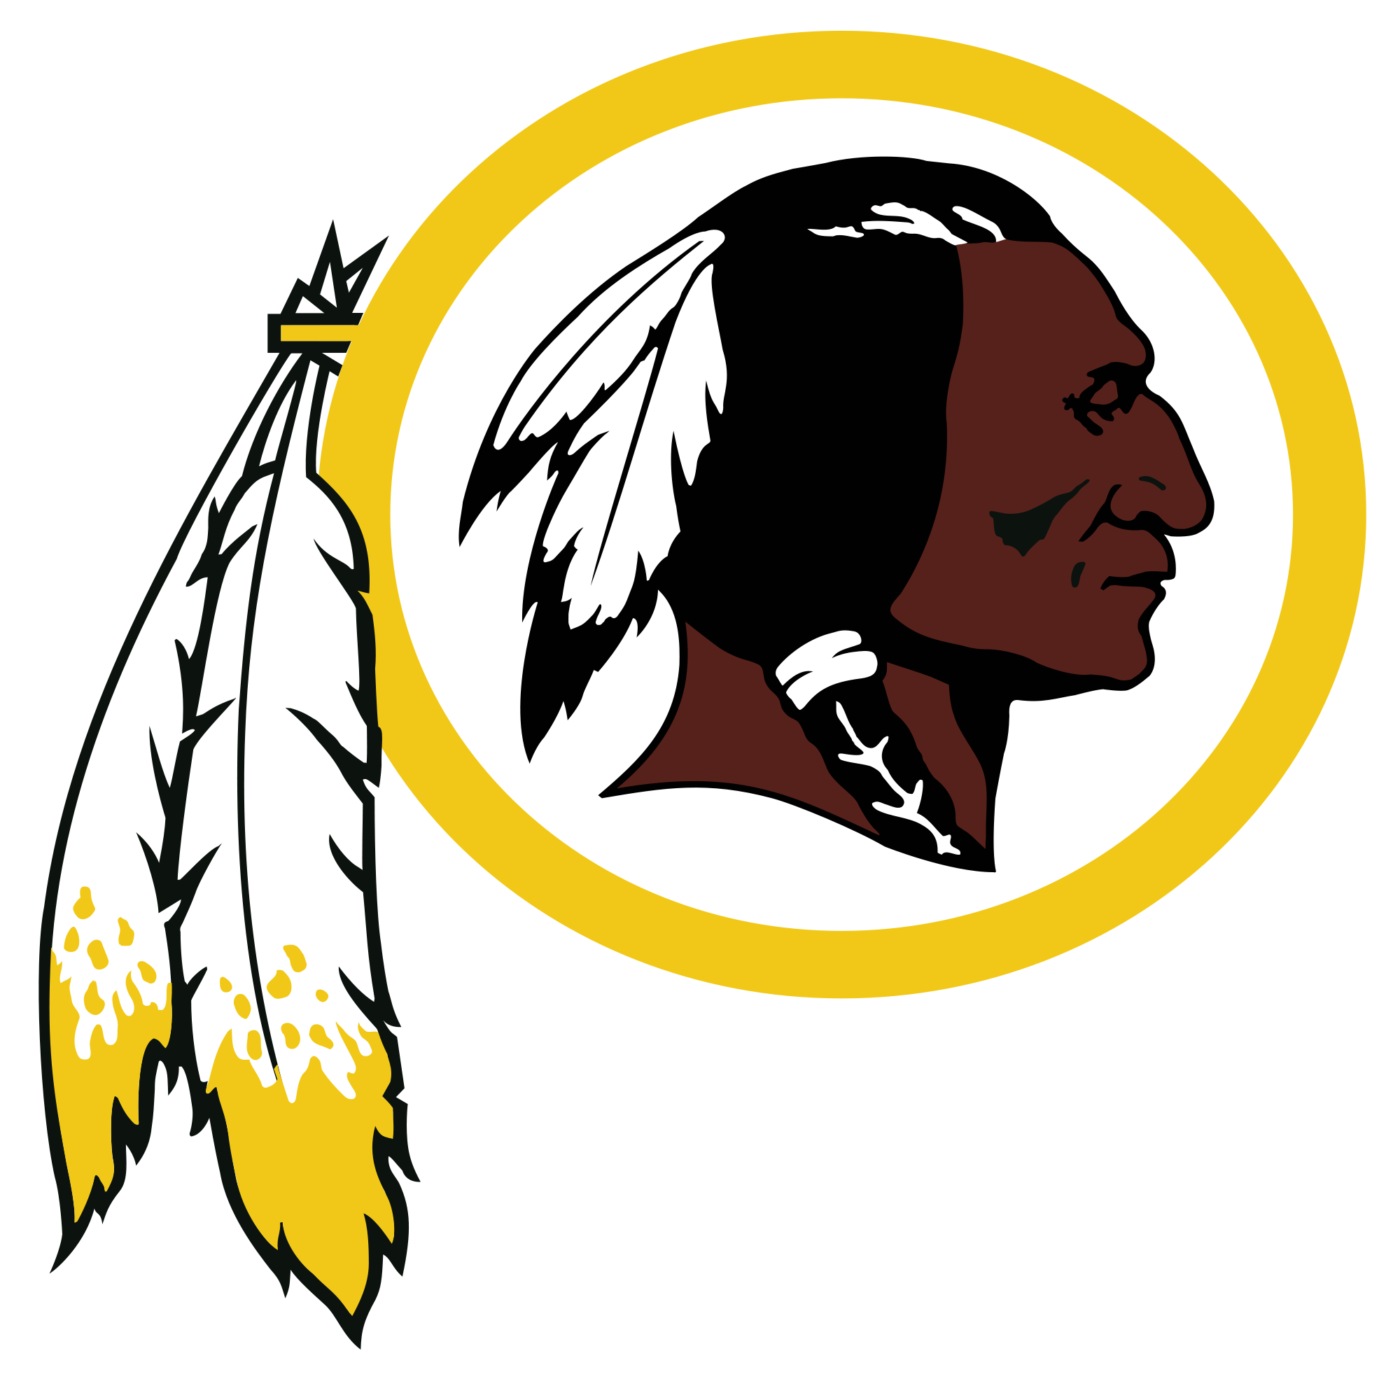 Worry clipart oxymoron. Let the redskins play